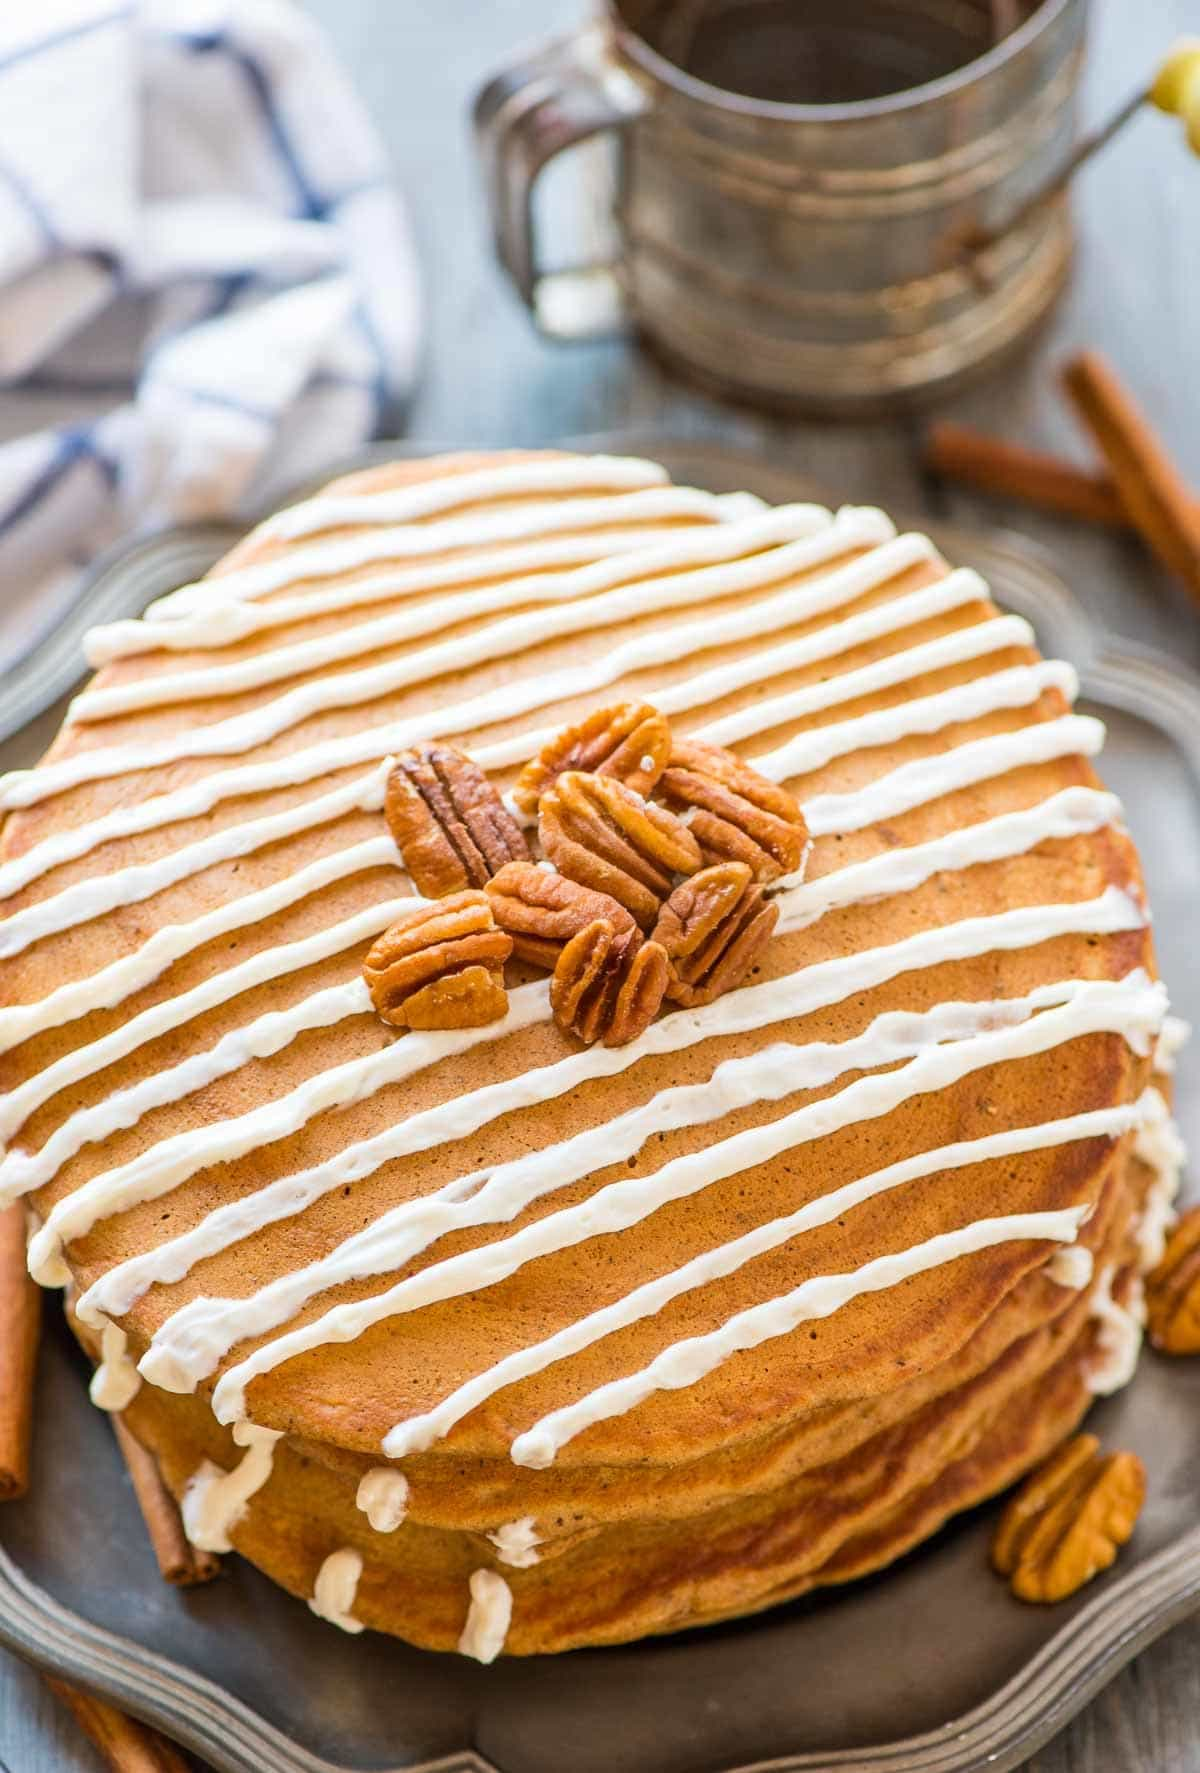 Soft and fluffy Gingerbread Pancakes with Maple Cream Cheese Topping. These Healthy Gingerbread Pancakes are made without molasses, so they are extra light and fluffy. Perfect for Christmas morning and holiday breakfasts! Recipe at wellplated.com | @wellplated